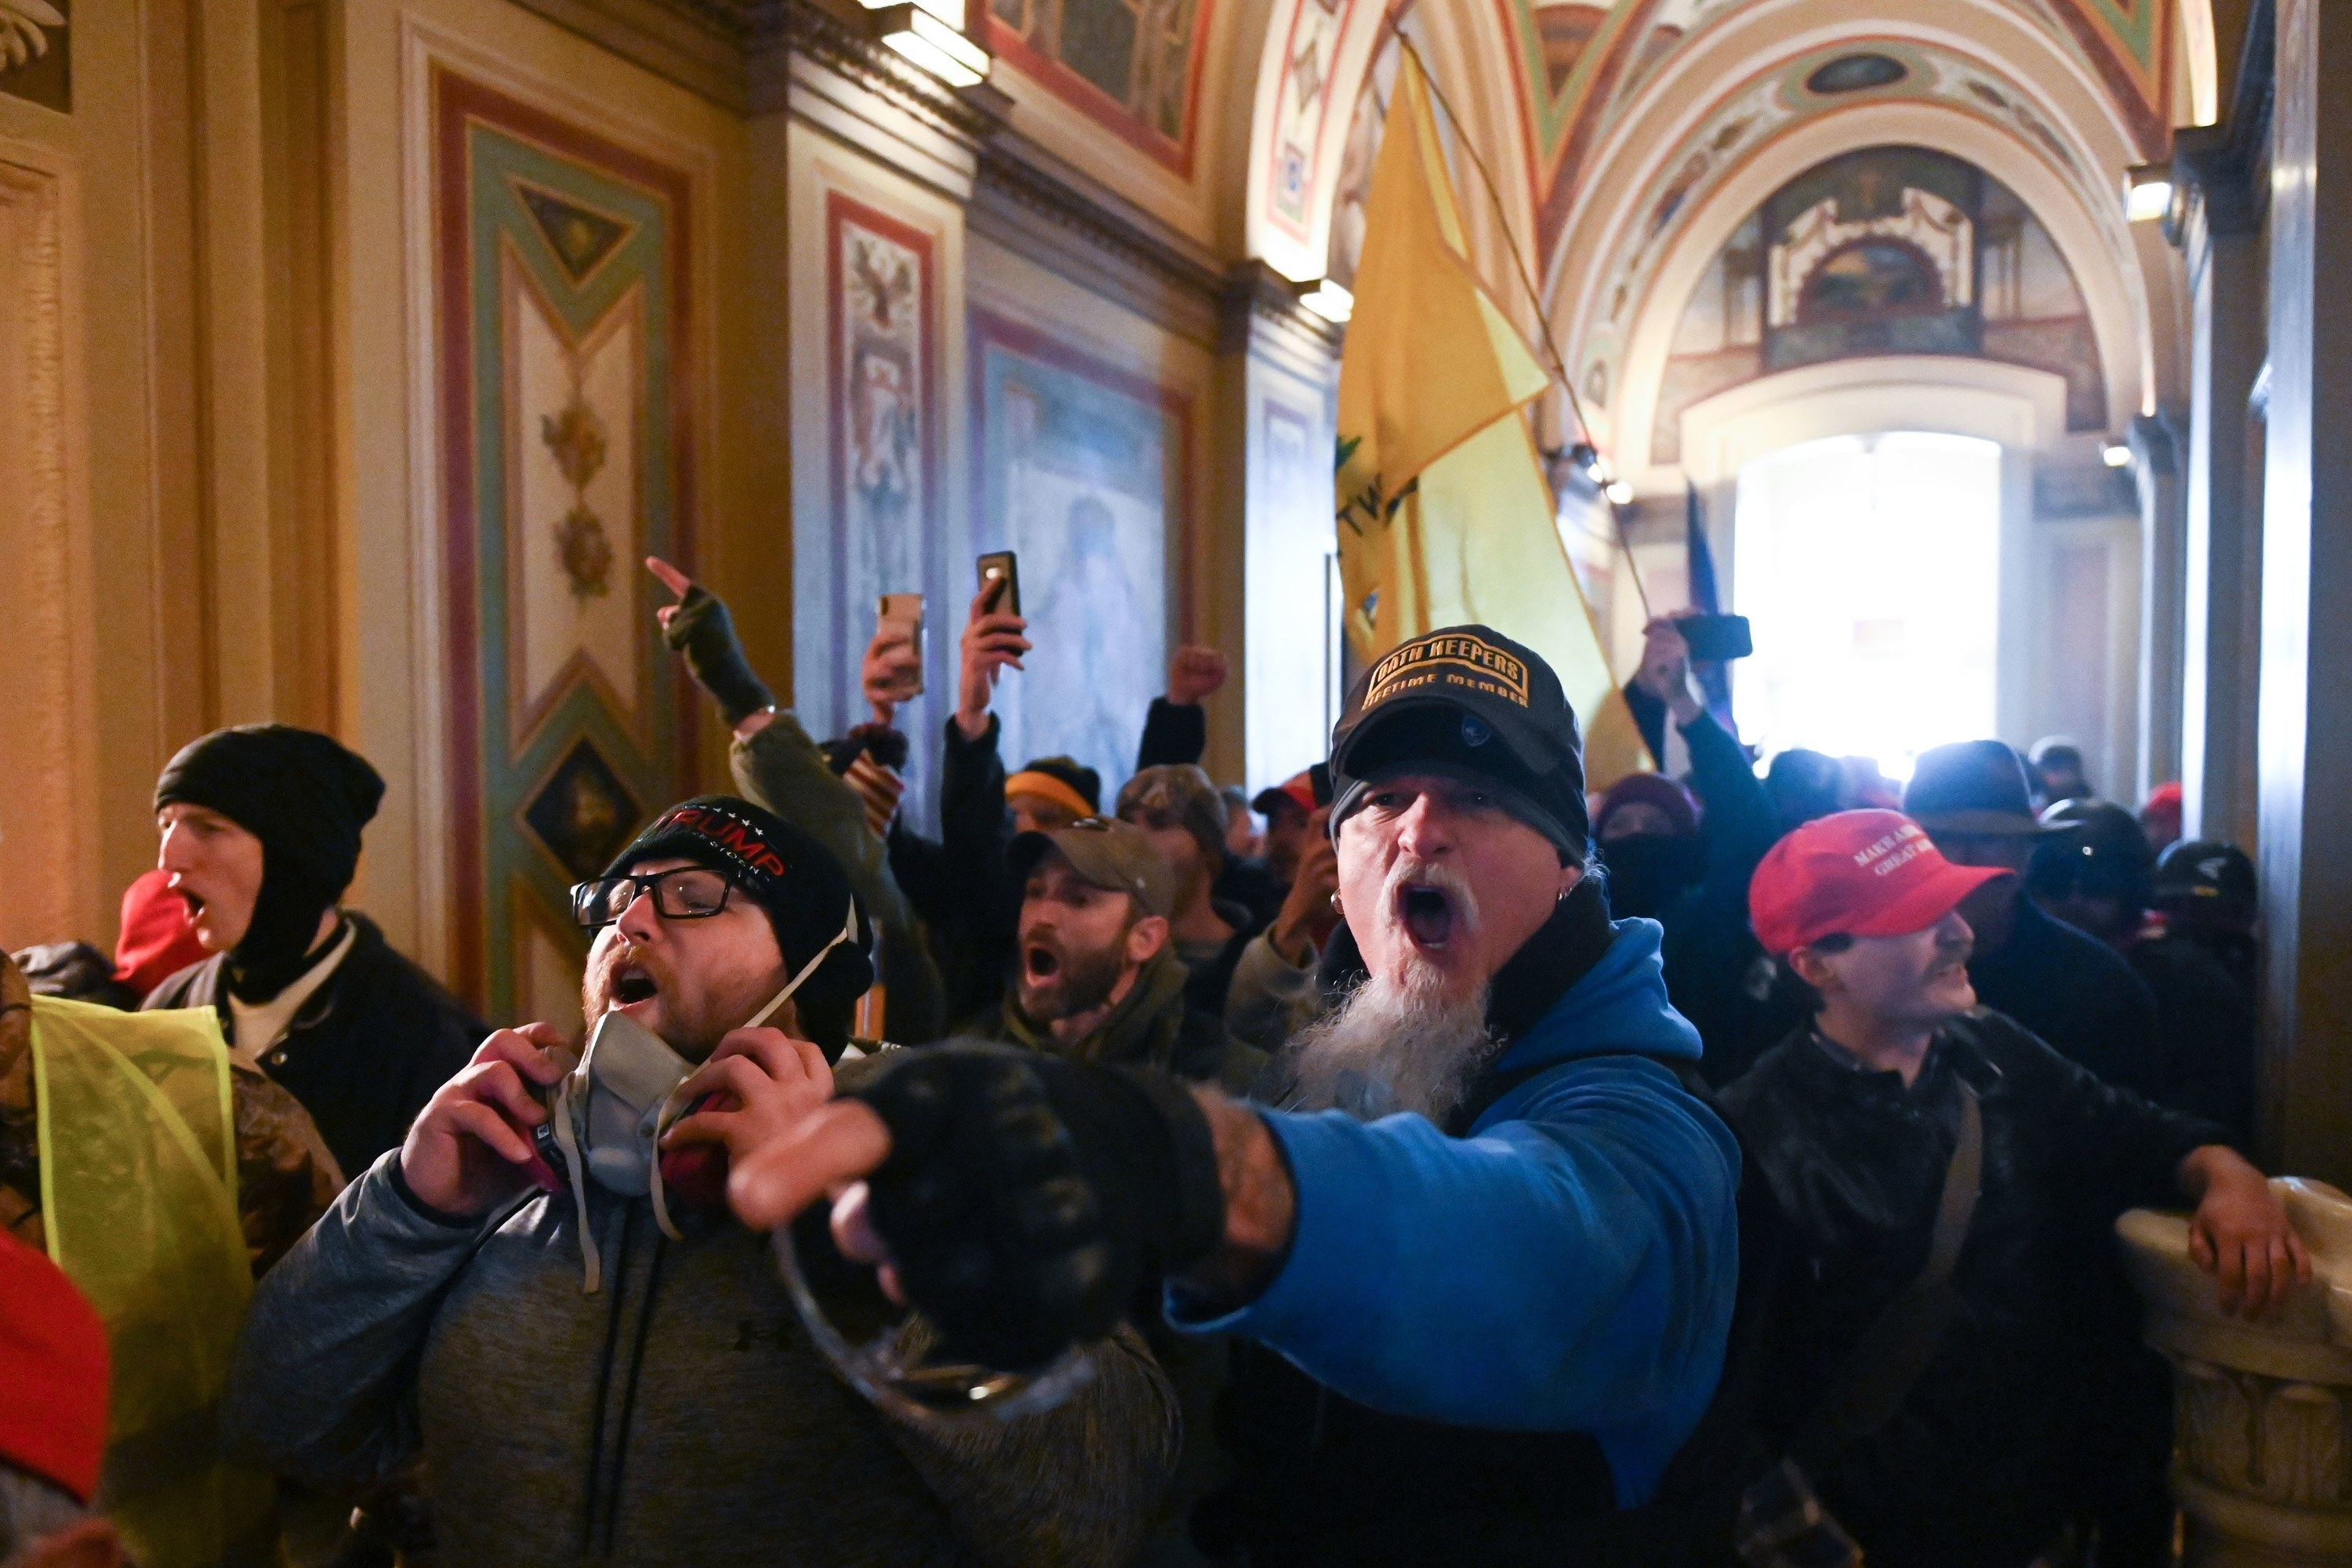 Trump supporters yelling inside the Capitol